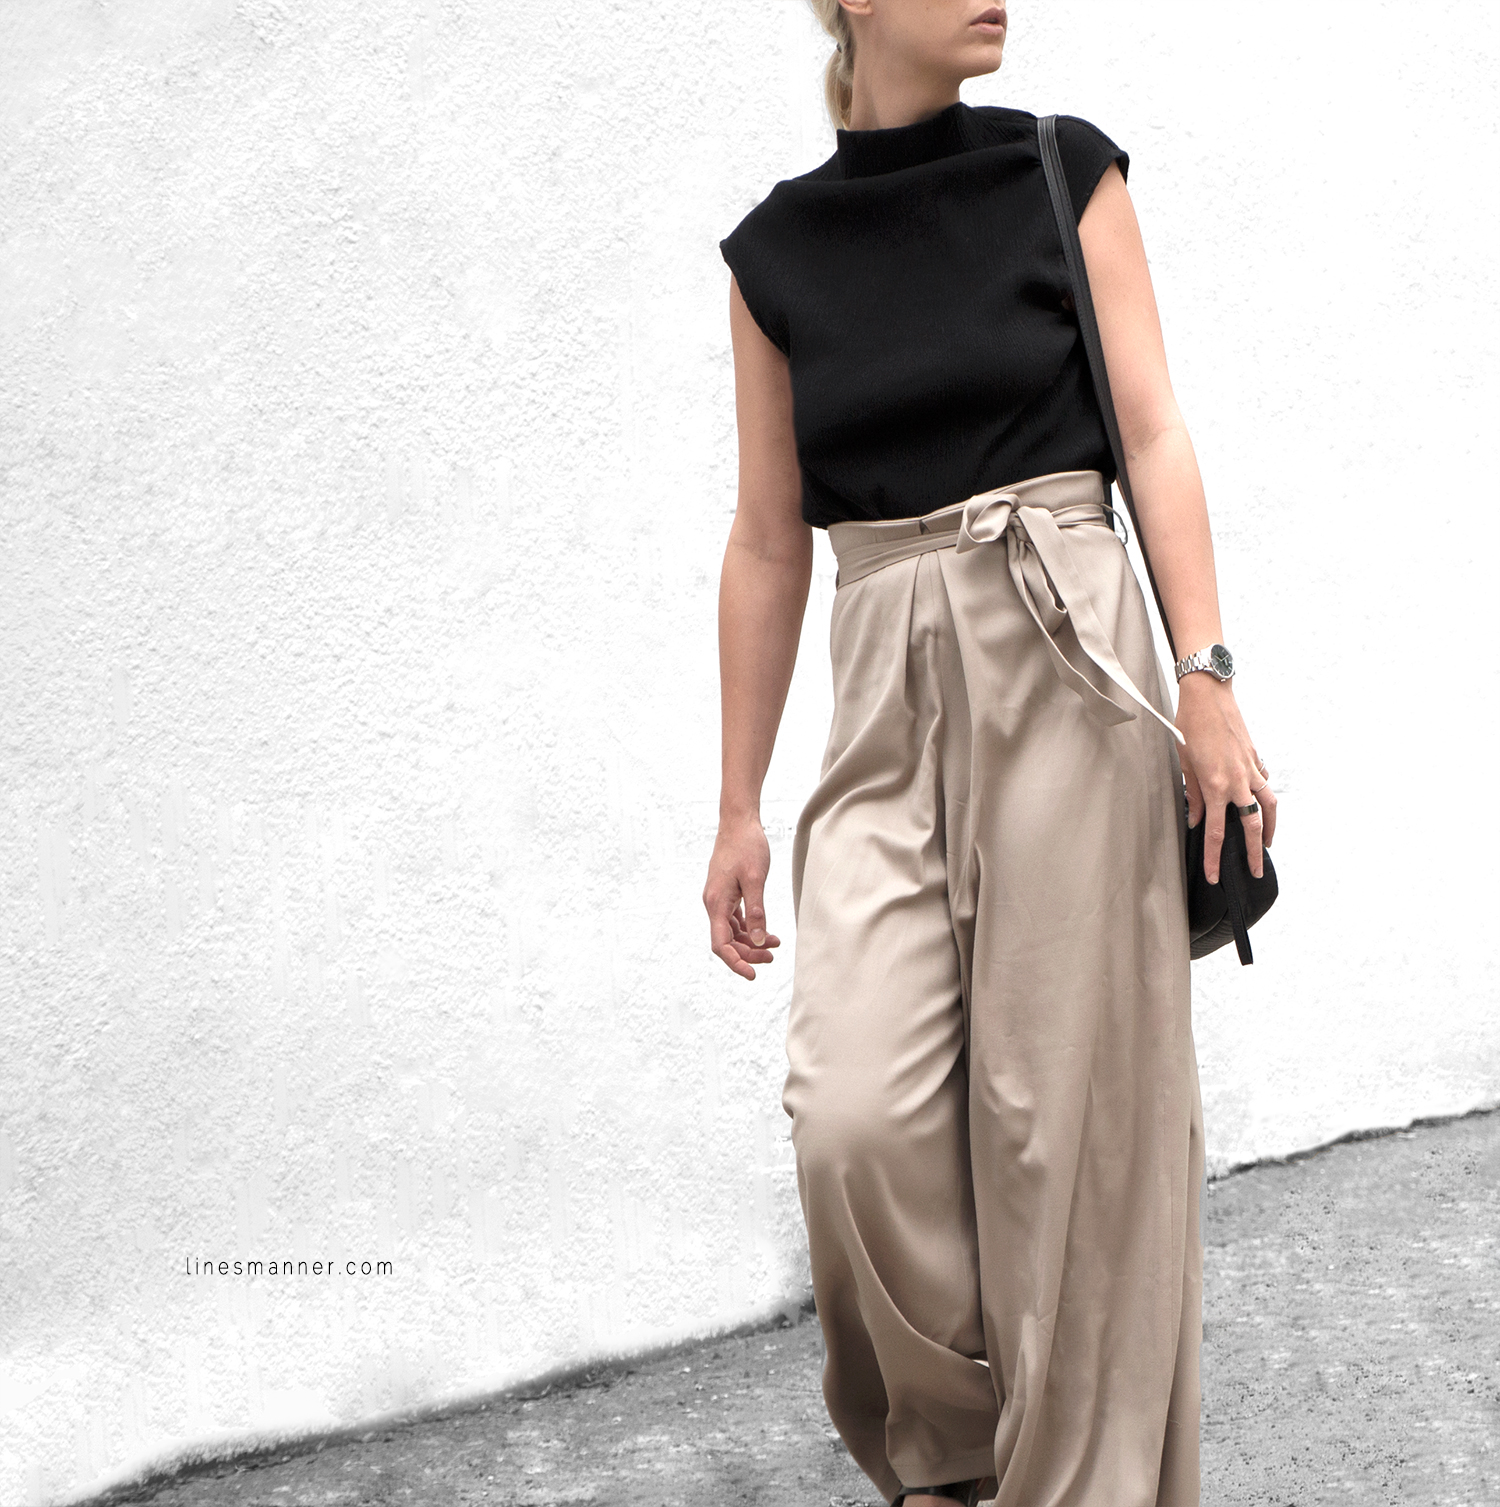 Lines-Manner-Neutrals-Quality-Lora_Gene-Wide_Leg_Pant-Modern-Sophistication-Tailored-Essentials-Details-Simplicity-Summer_vibes-Volume-Proportion-Flowy-13